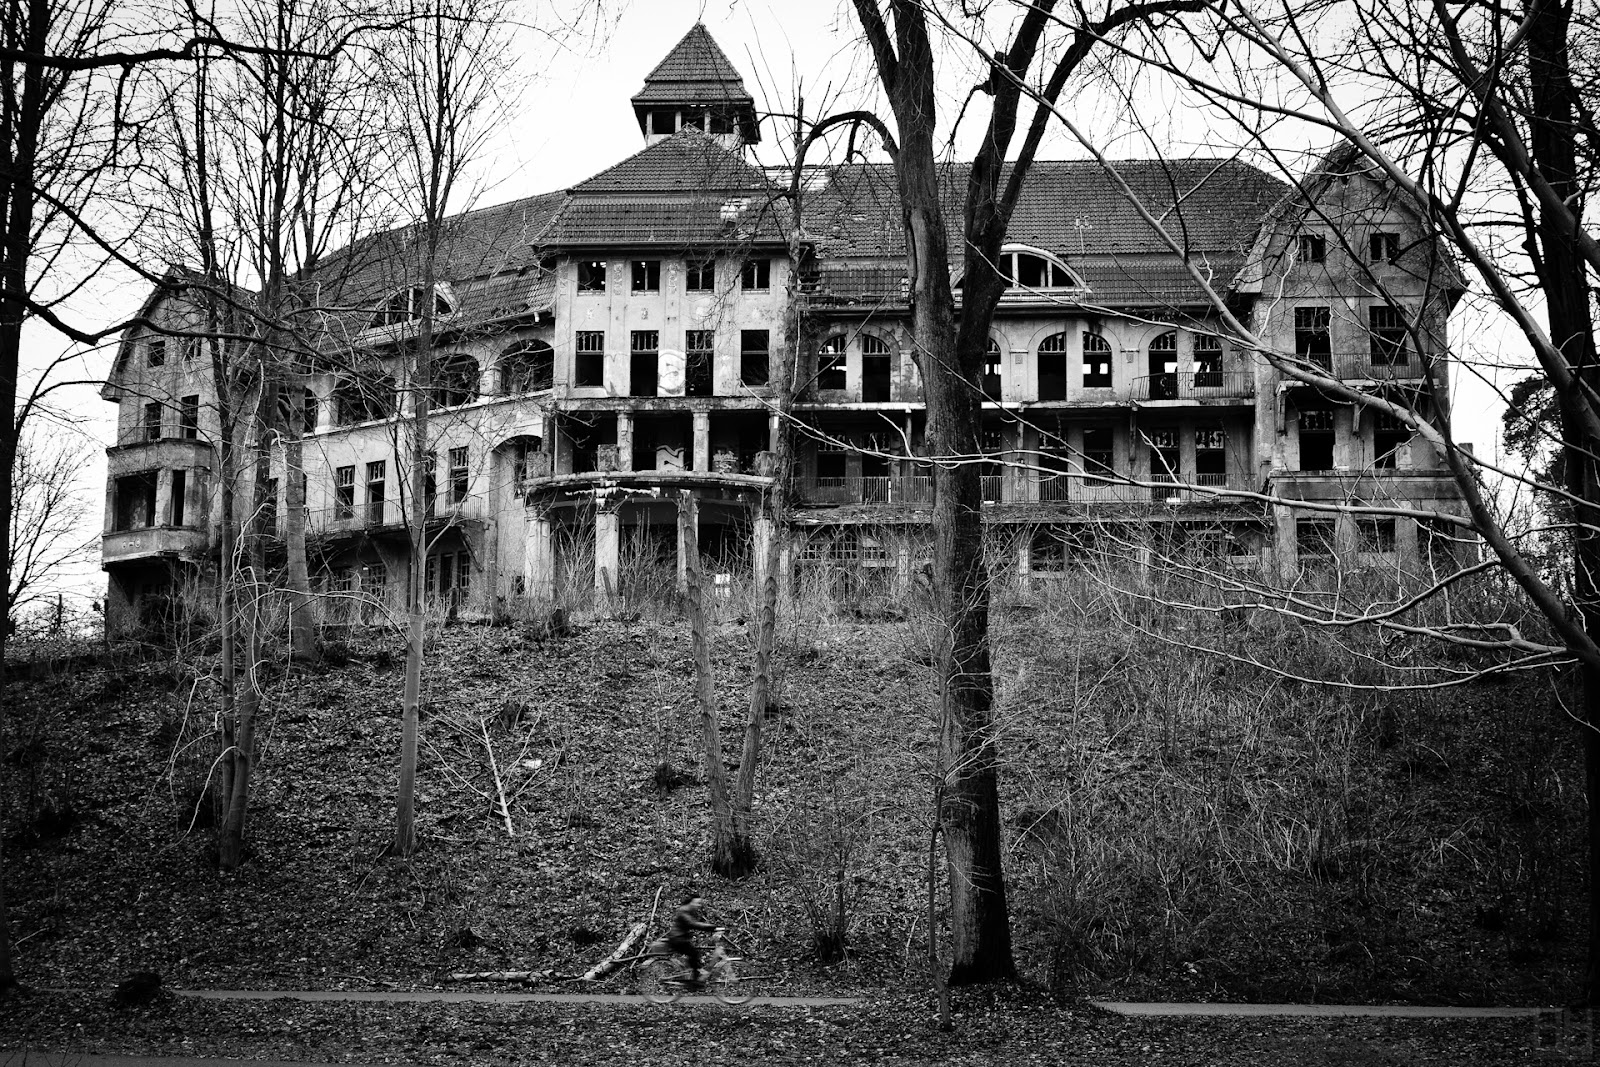 File:The Haunted House Das Geisterhaus (5360049608).jpg ...